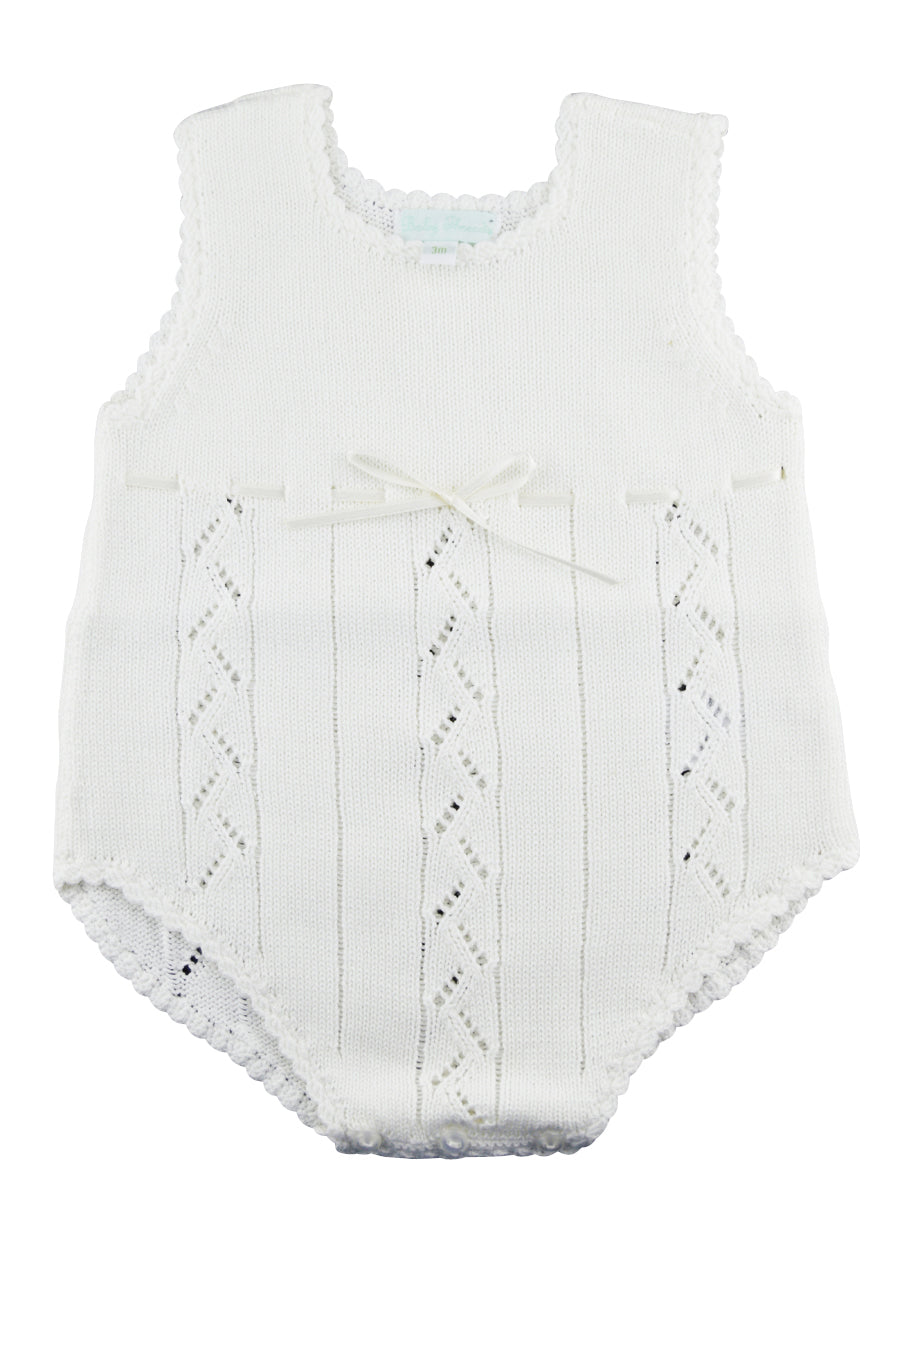 White Pima Cotton Knitted Baby Romper - Little Threads Inc. Children's Clothing